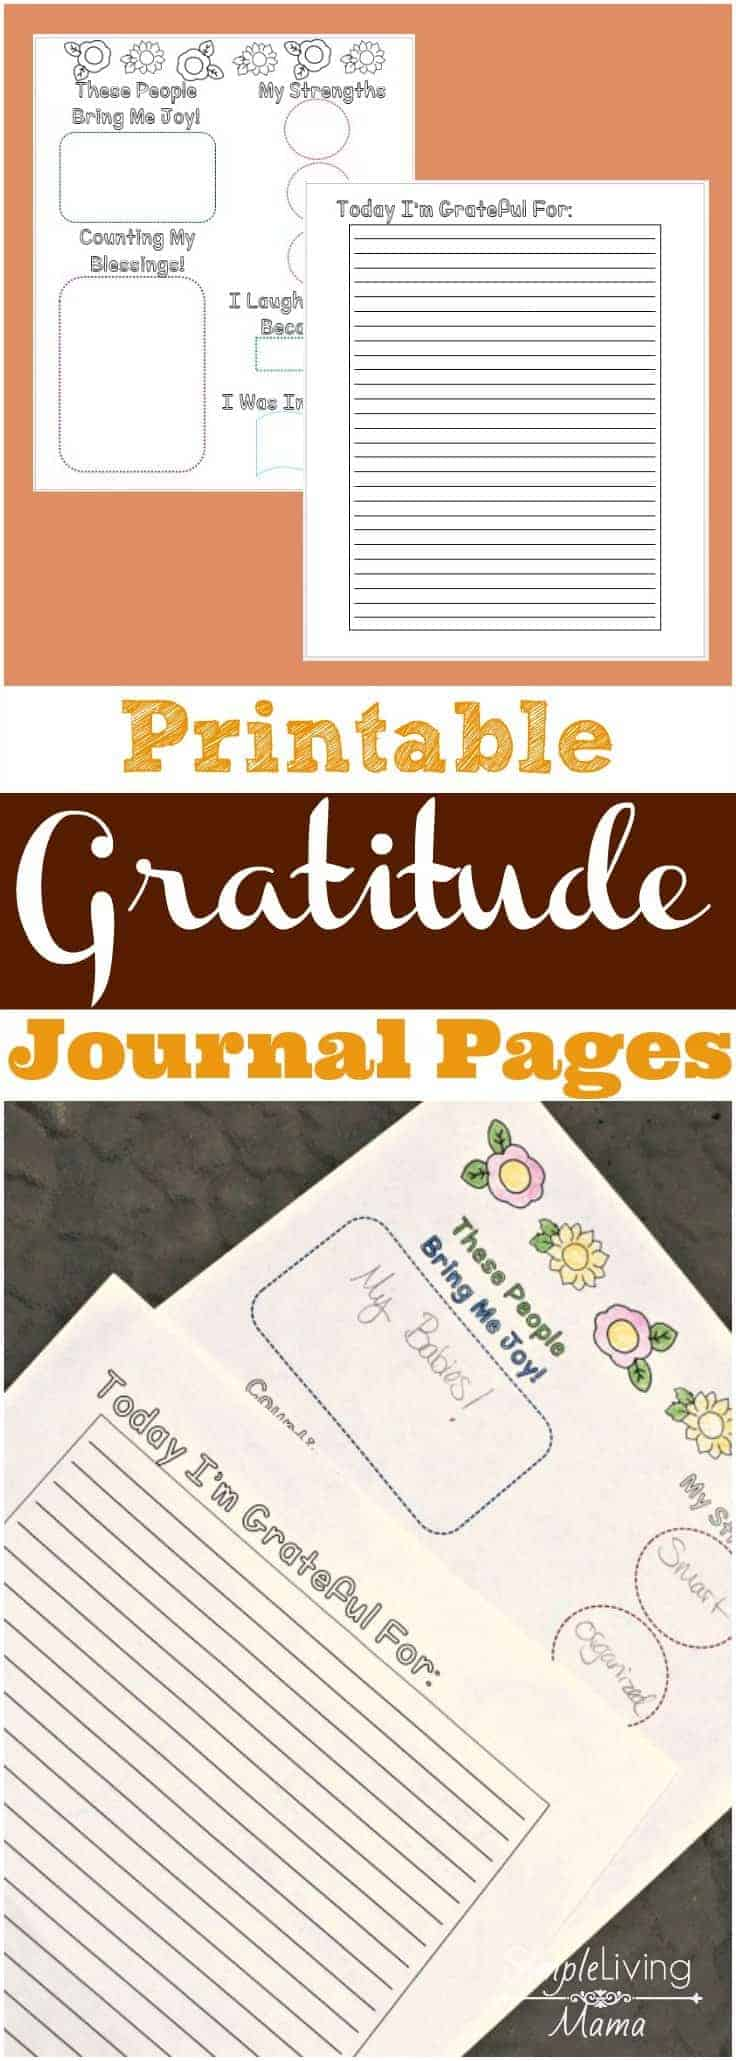 Printable gratitude journal pages for moms that can be colored!